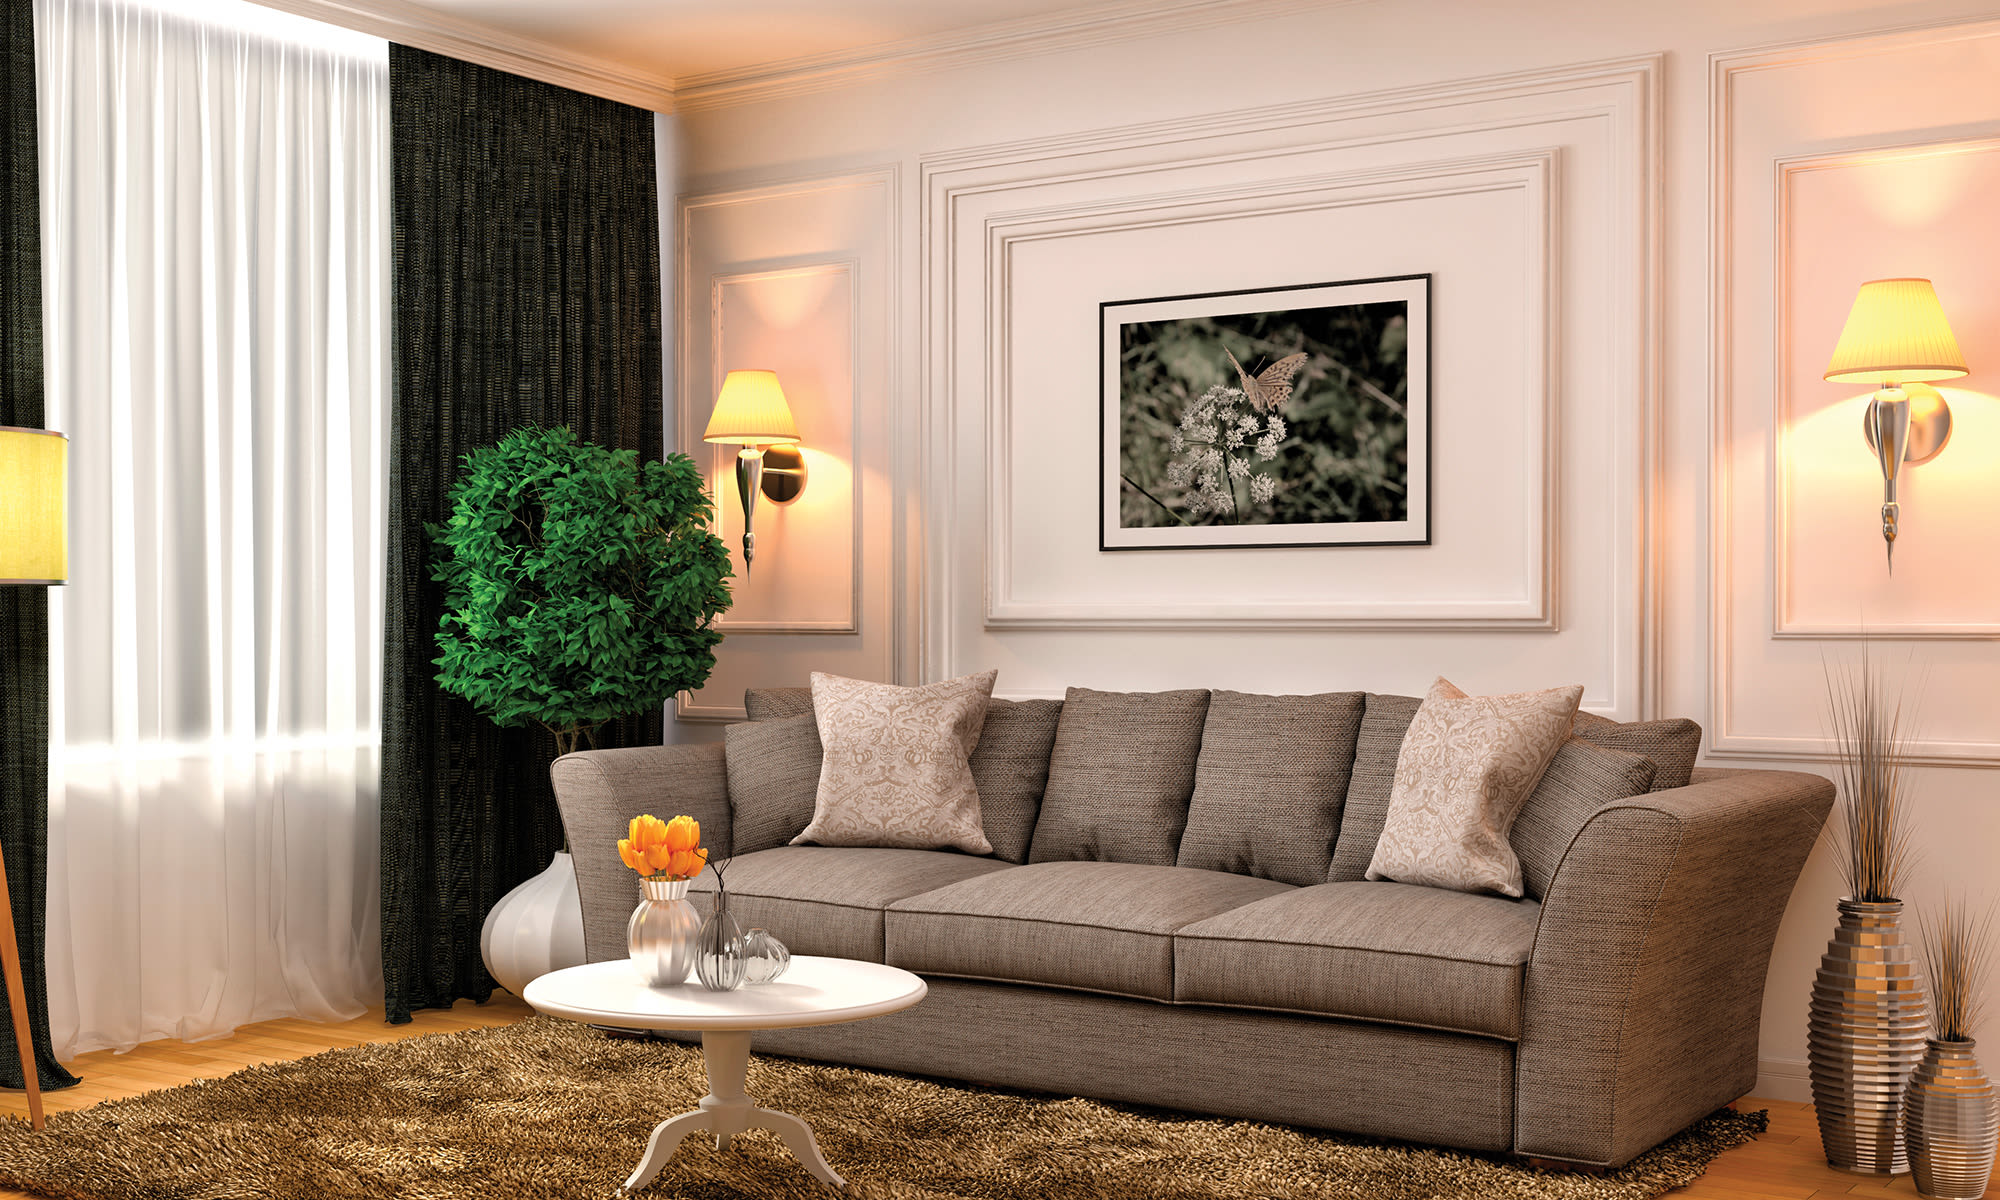 living room with couch and chairs